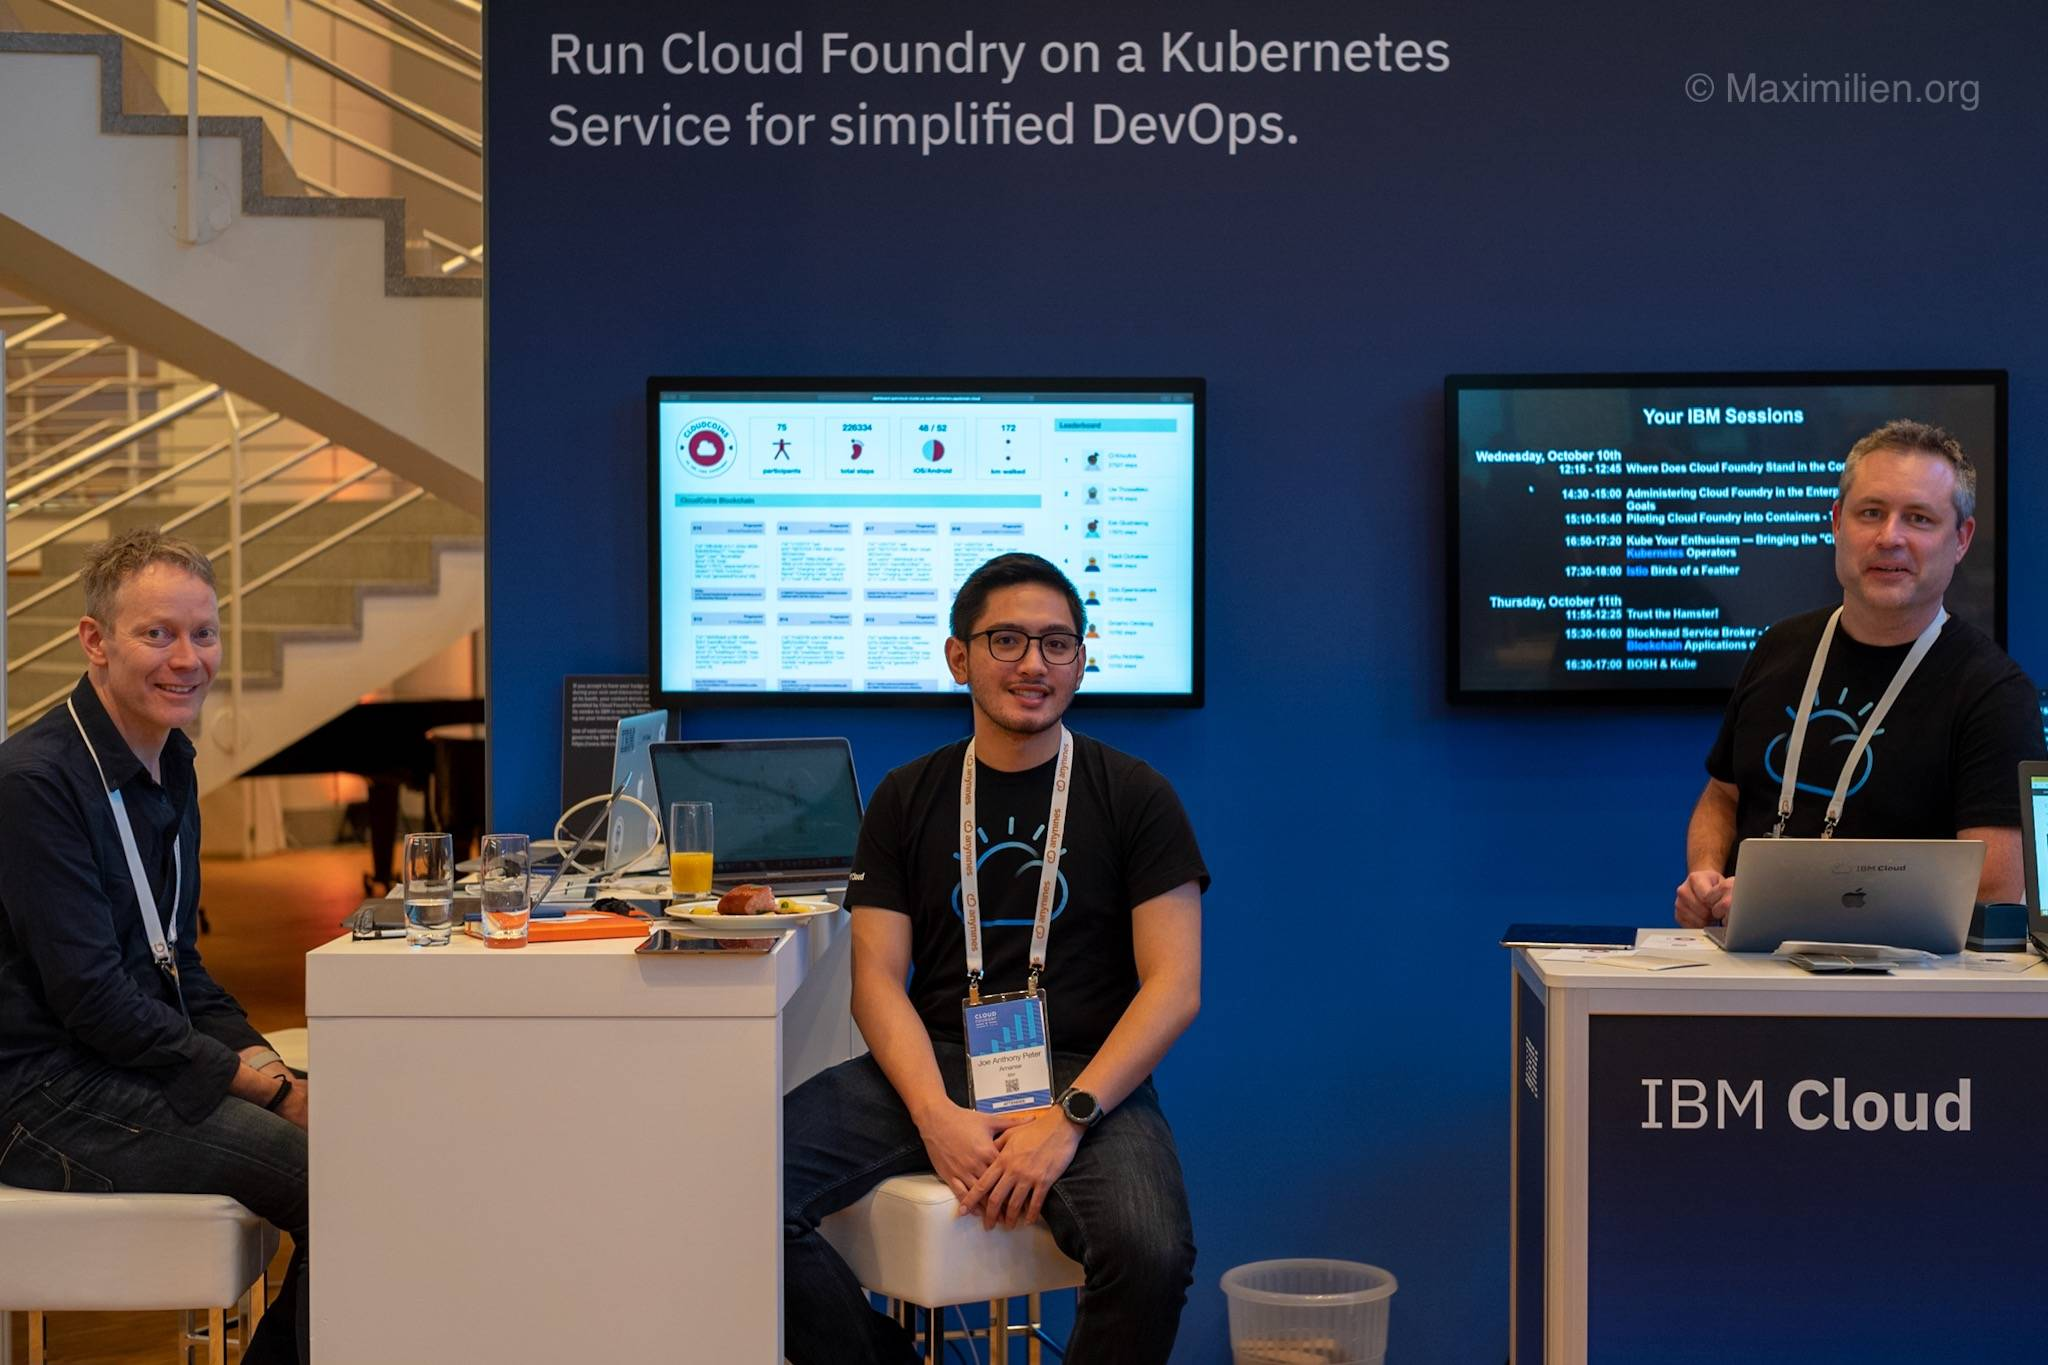 The IBM booth at the Cloud Foundry Summit 2018 in Basel